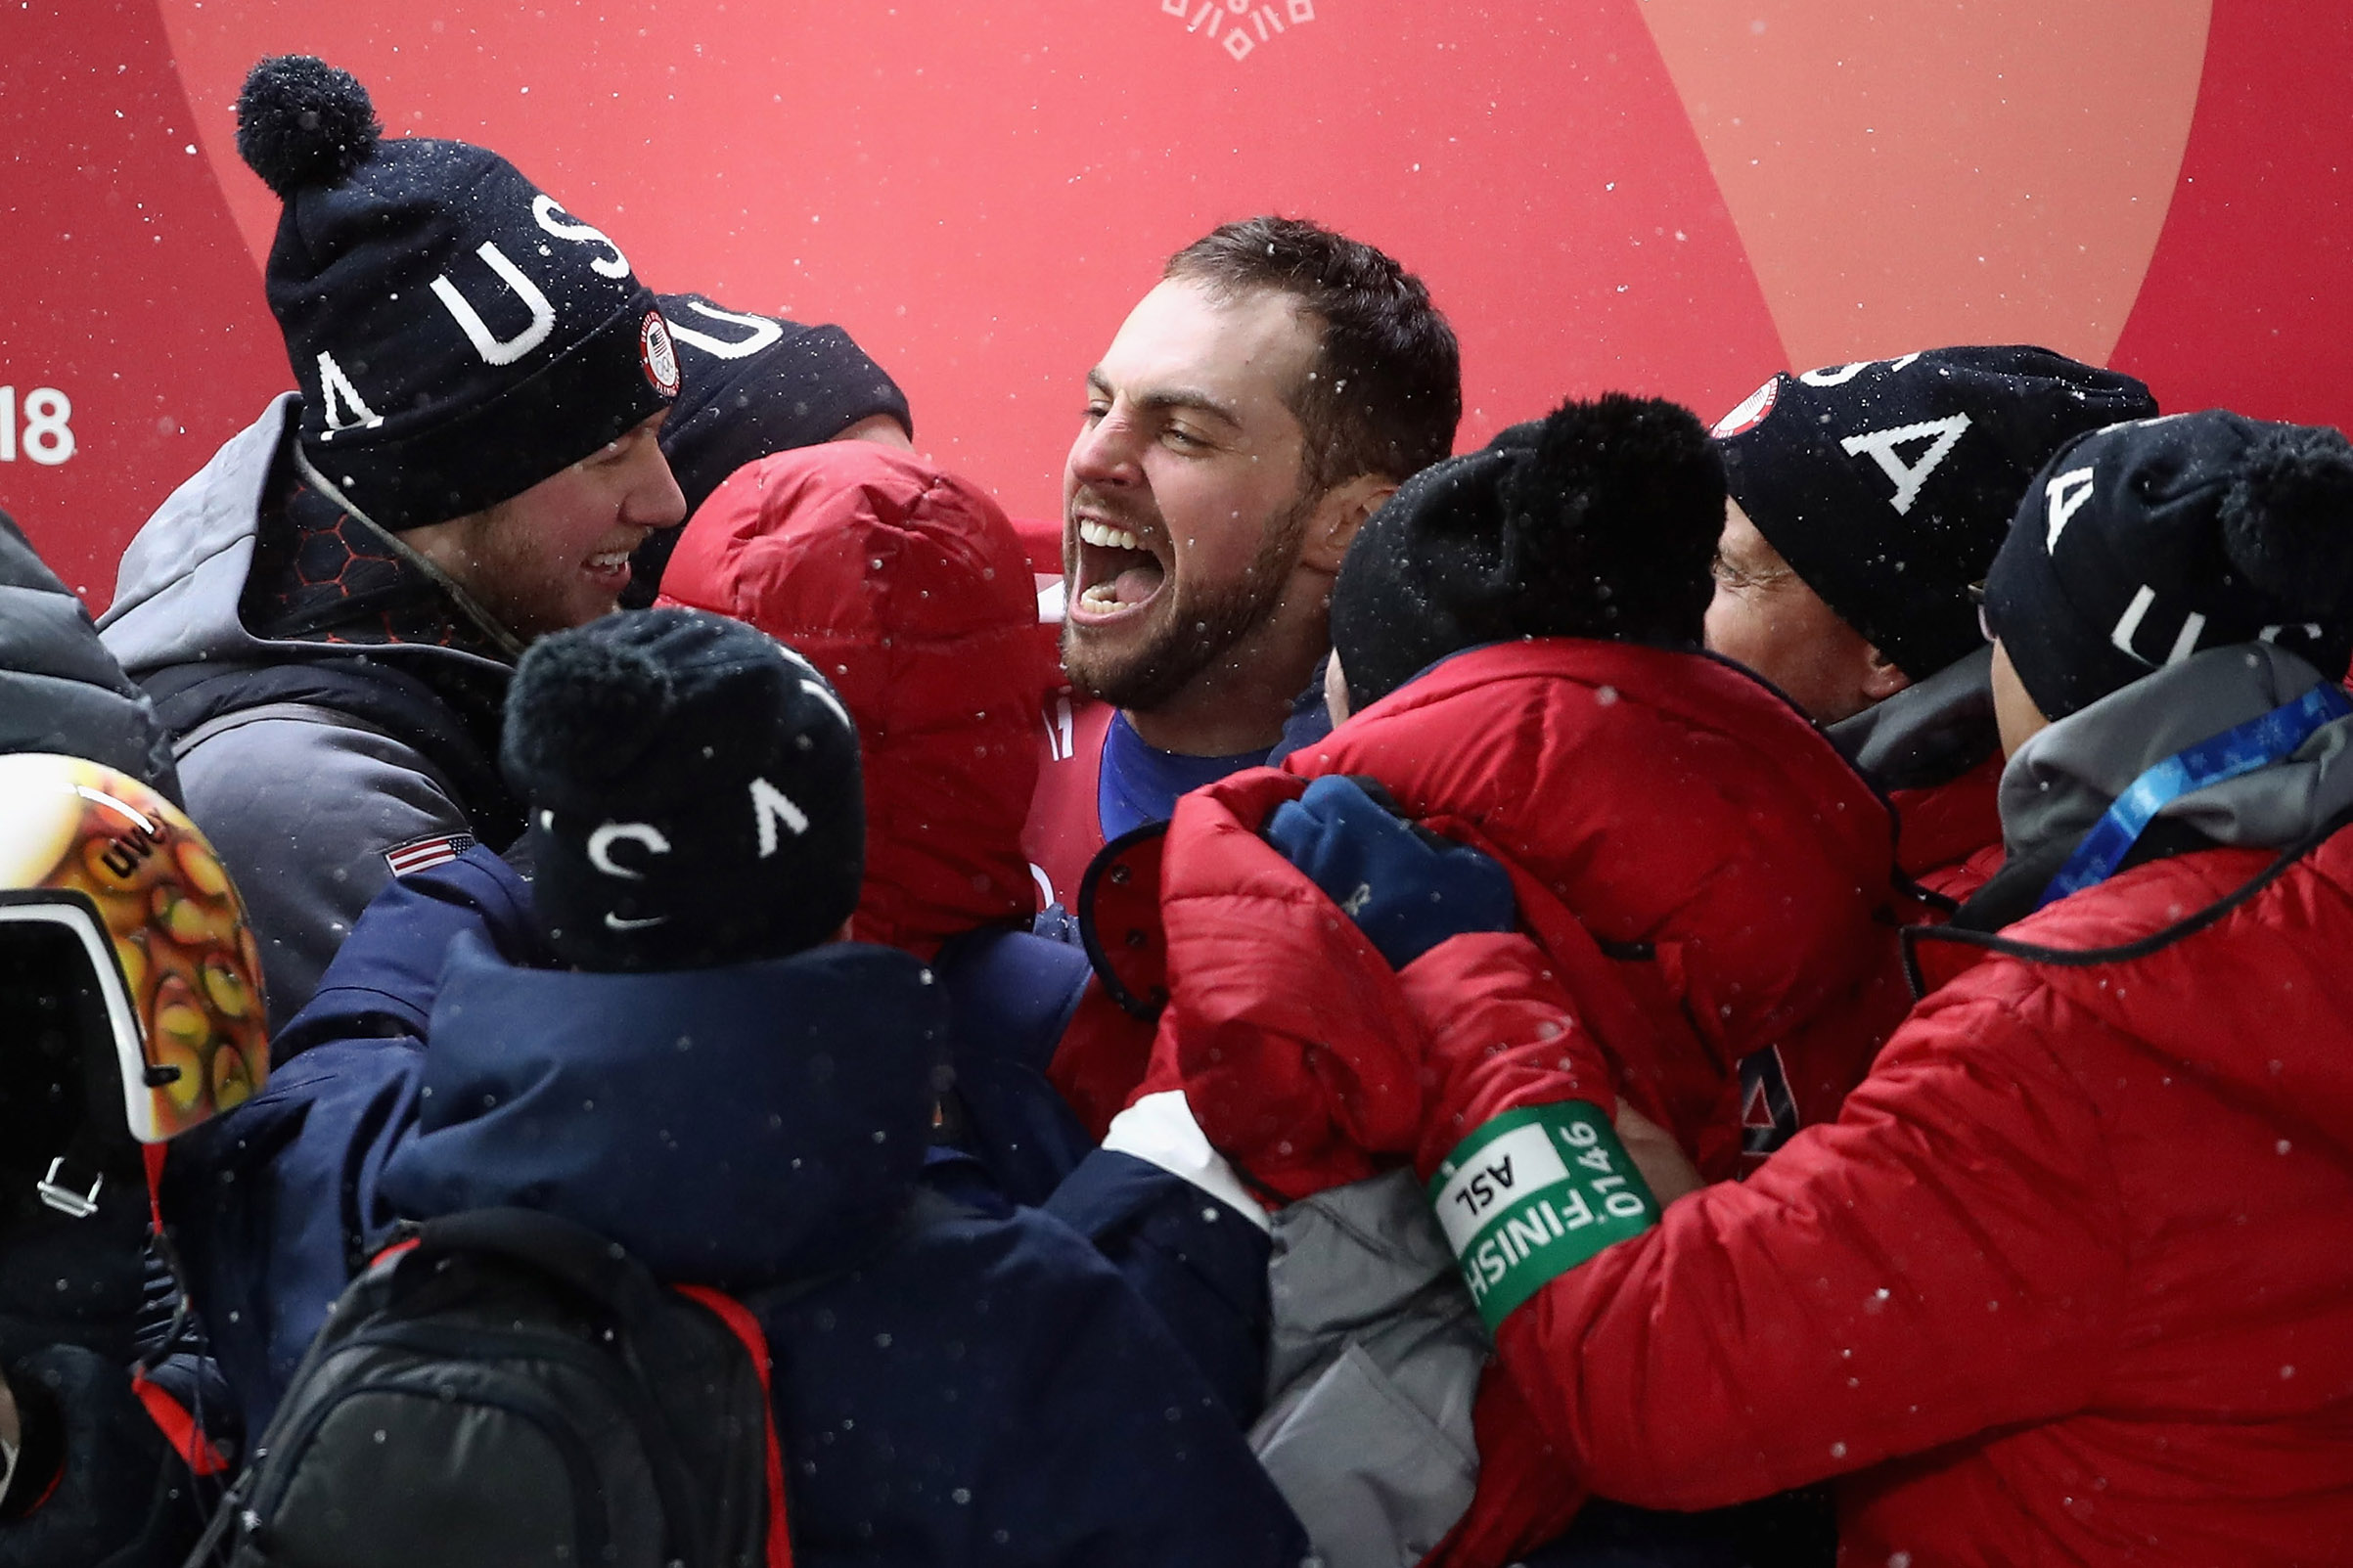 Chris Mazdzer of the United States celebrates after he won silver in the Luge Men's Singles on Feb. 11, 2018.